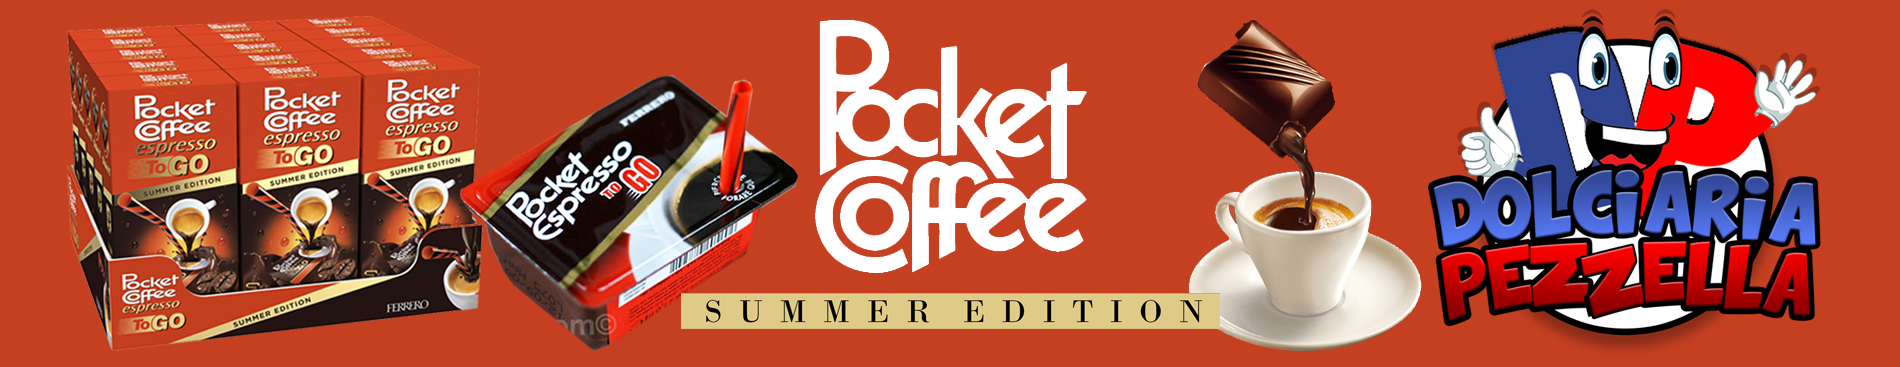 POCKET TO GO SUMMER EDITION